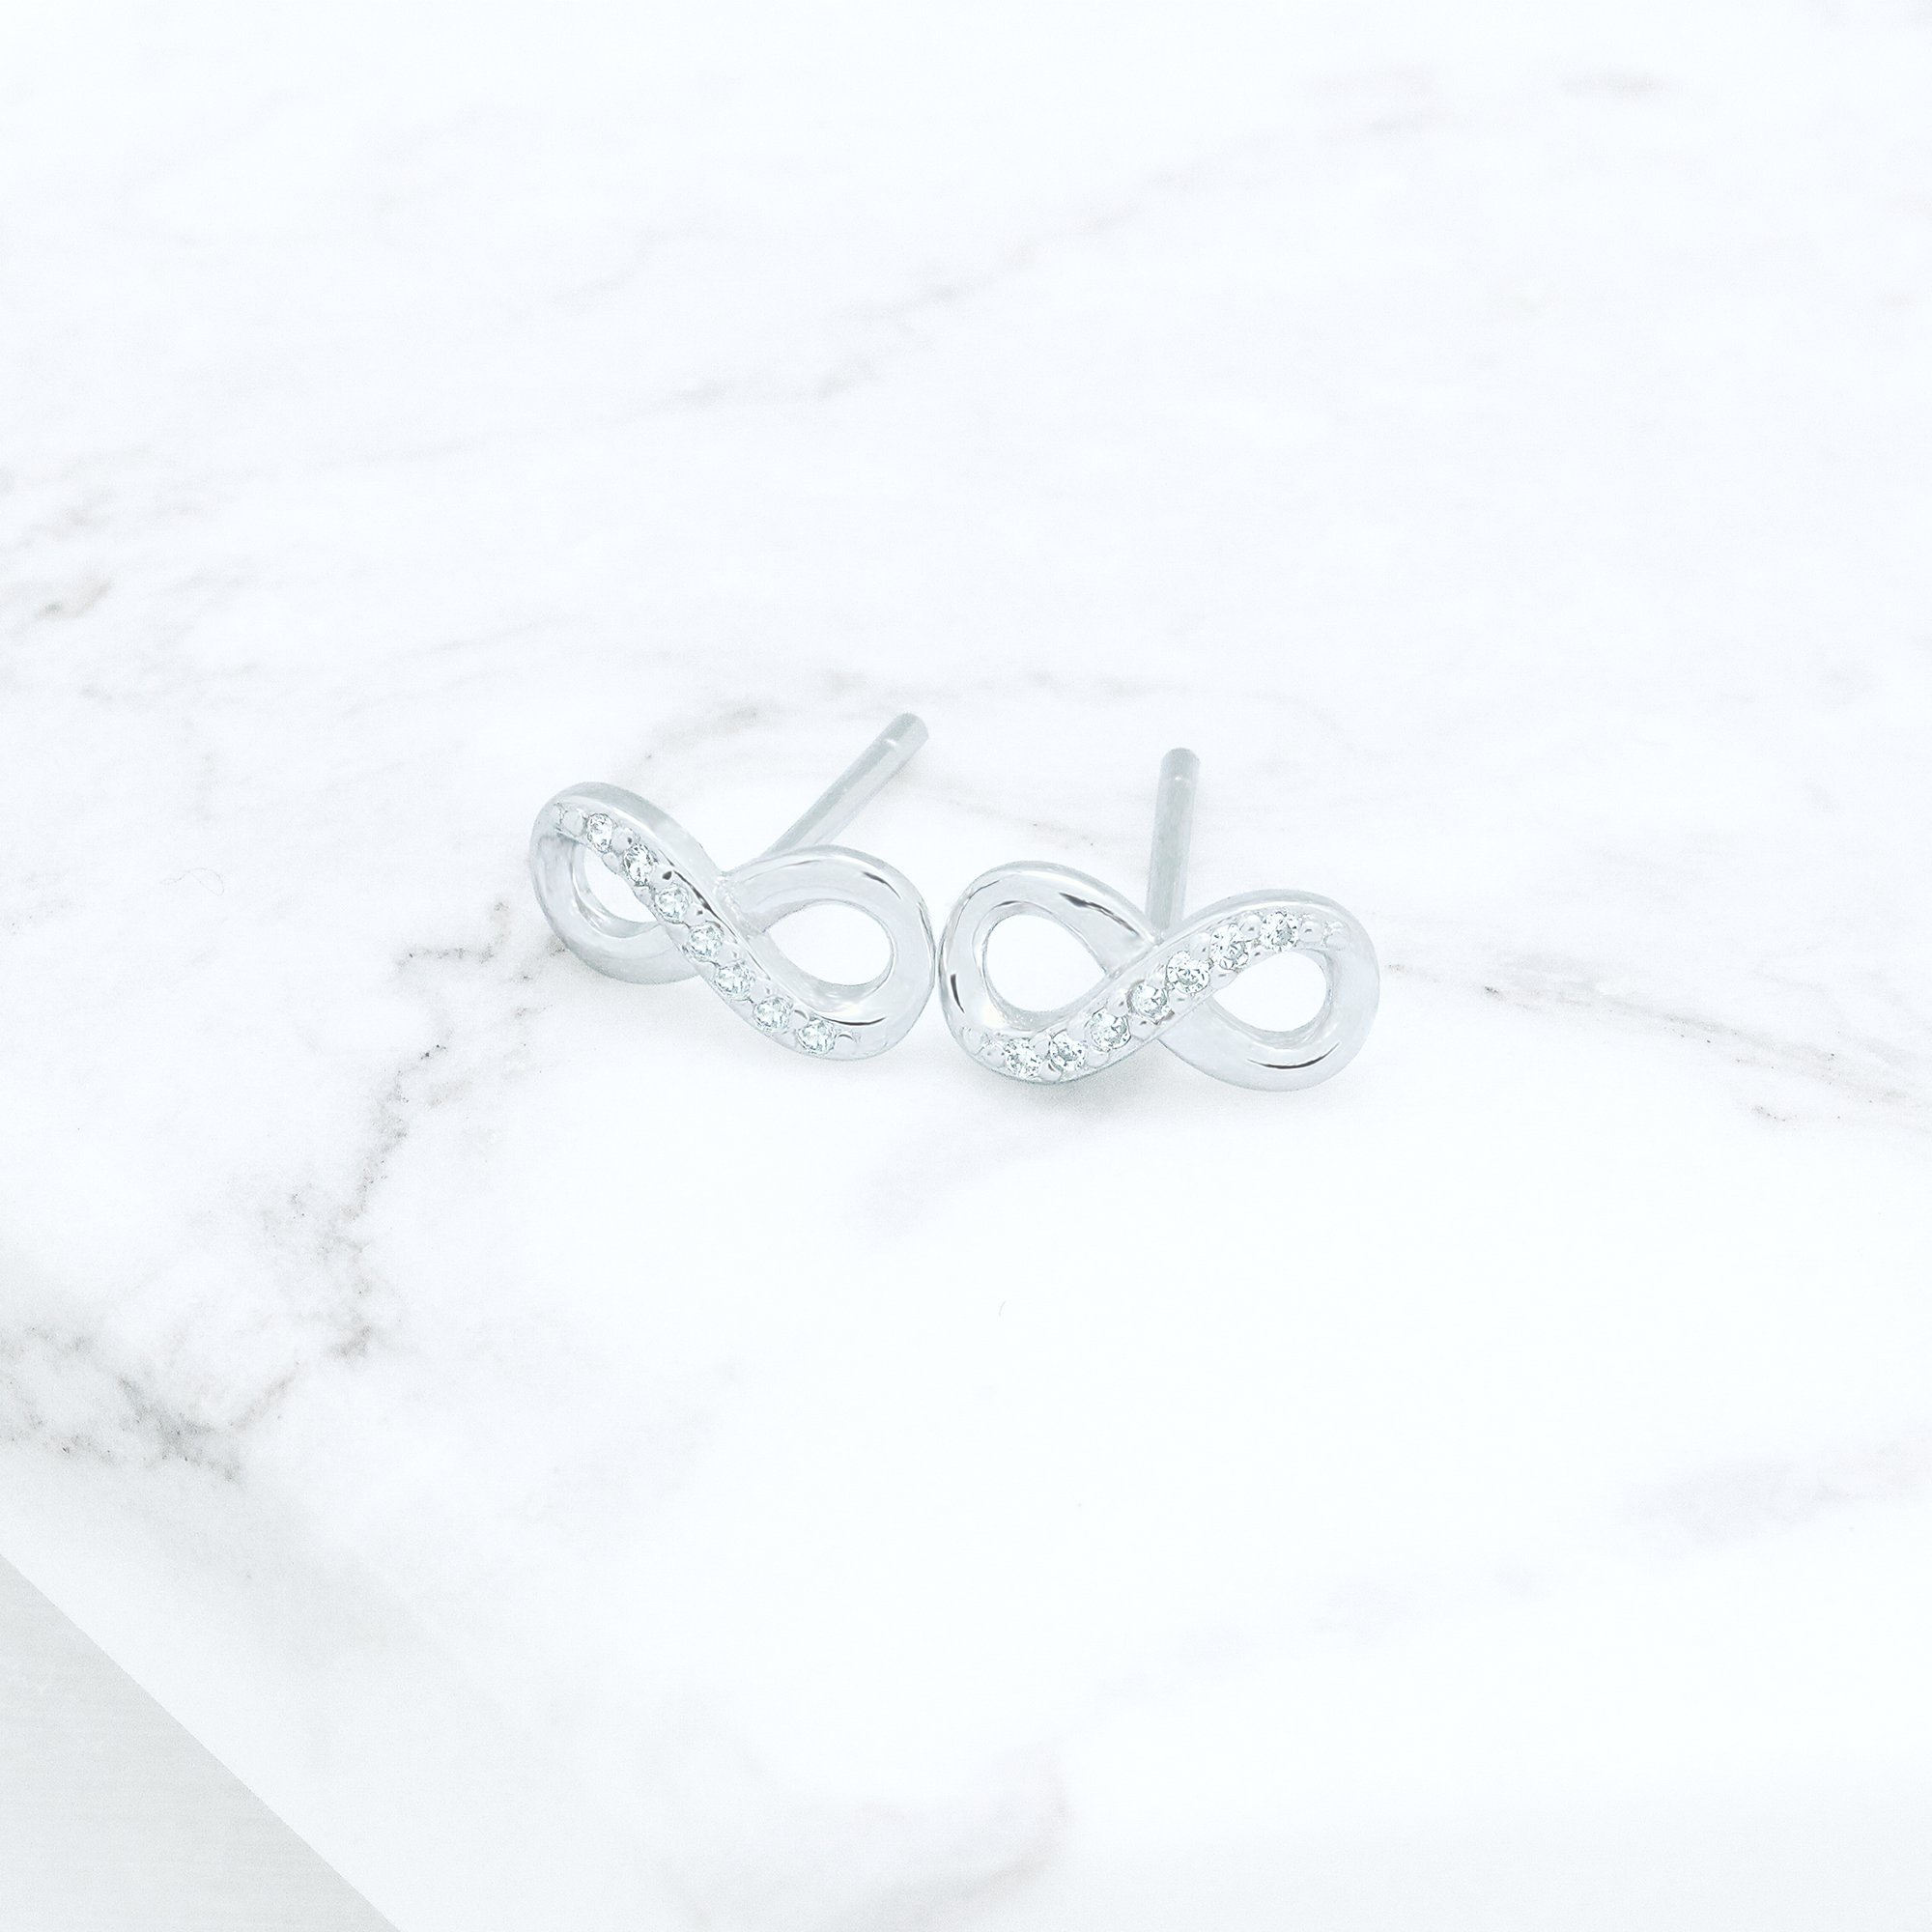 Rhodium Plated Sterling Silver Cubic Zirconia Half Set Infinity Stud Earrings by Spoil Cupid (Image #3)